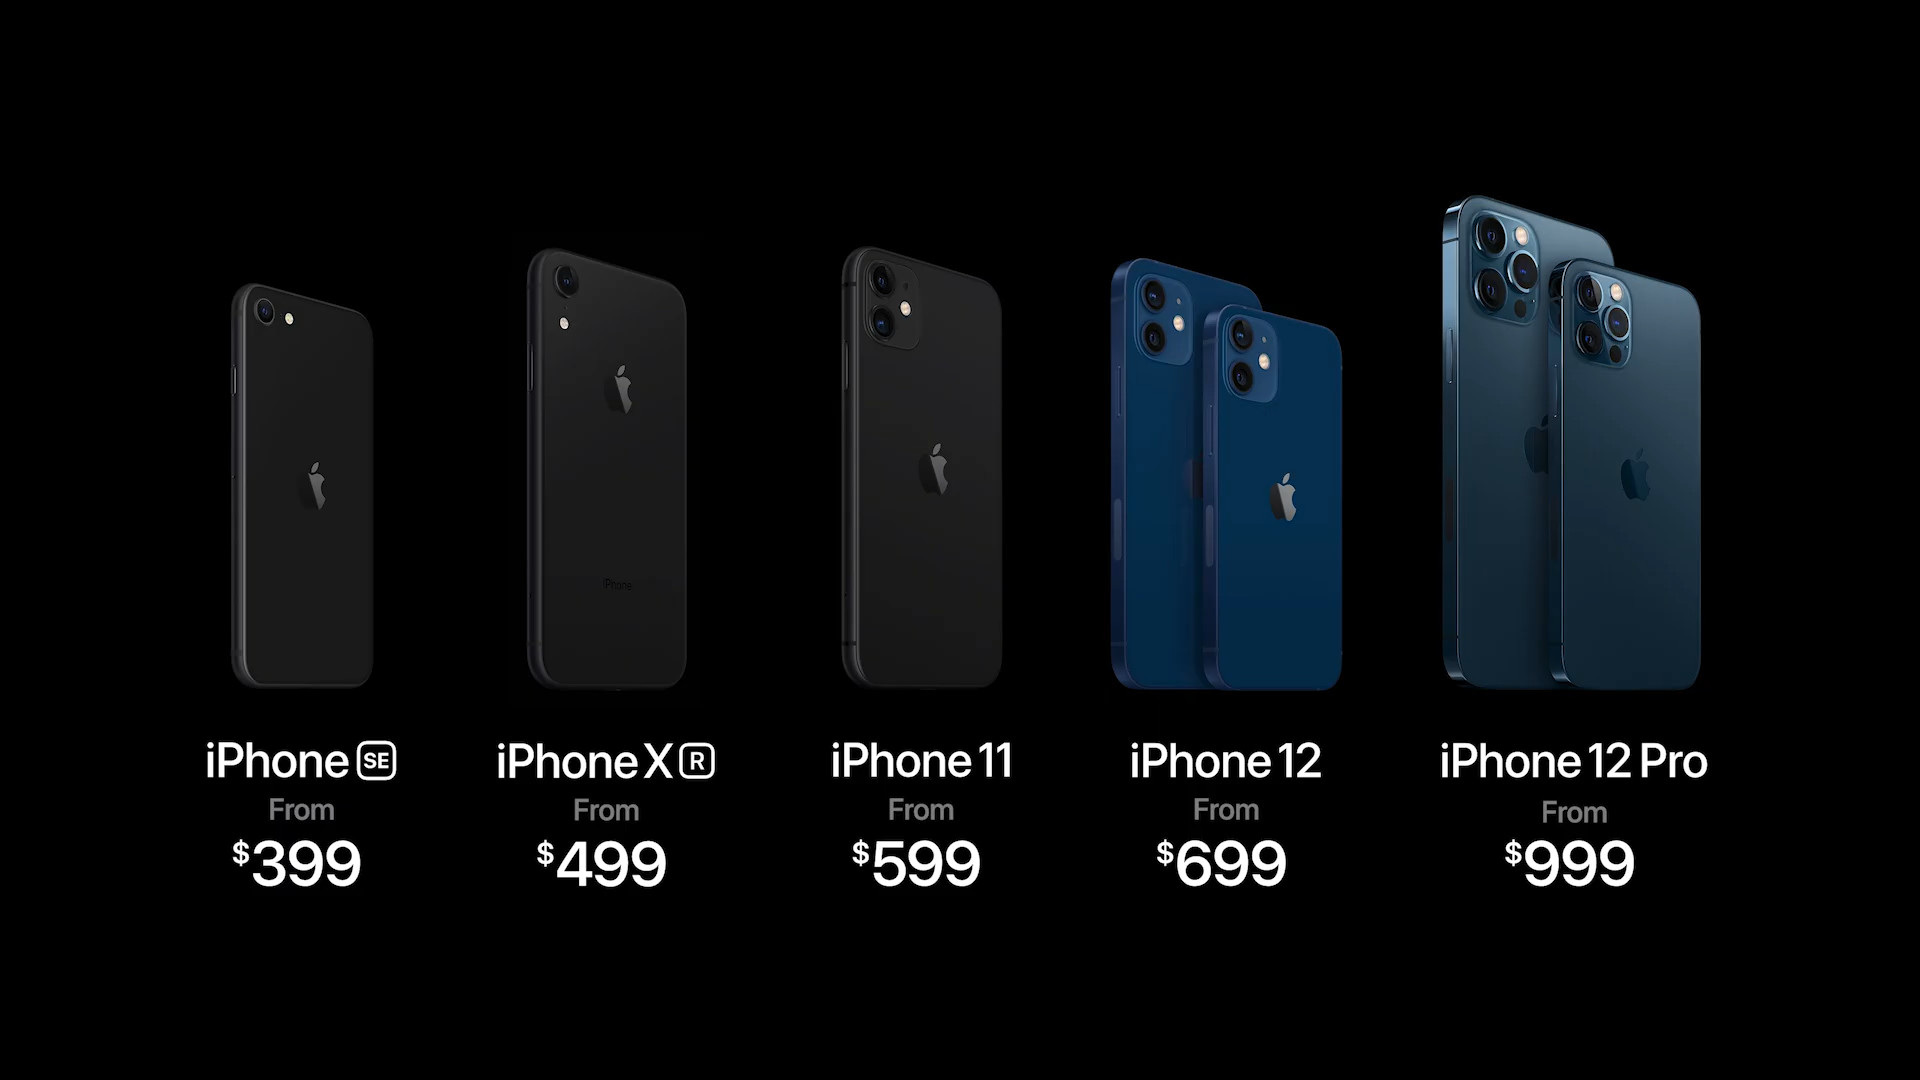 Apple S Iphone 12 Mini And Iphone 12 Pro Max Are Up For Pre Order Tomorrow Neowin